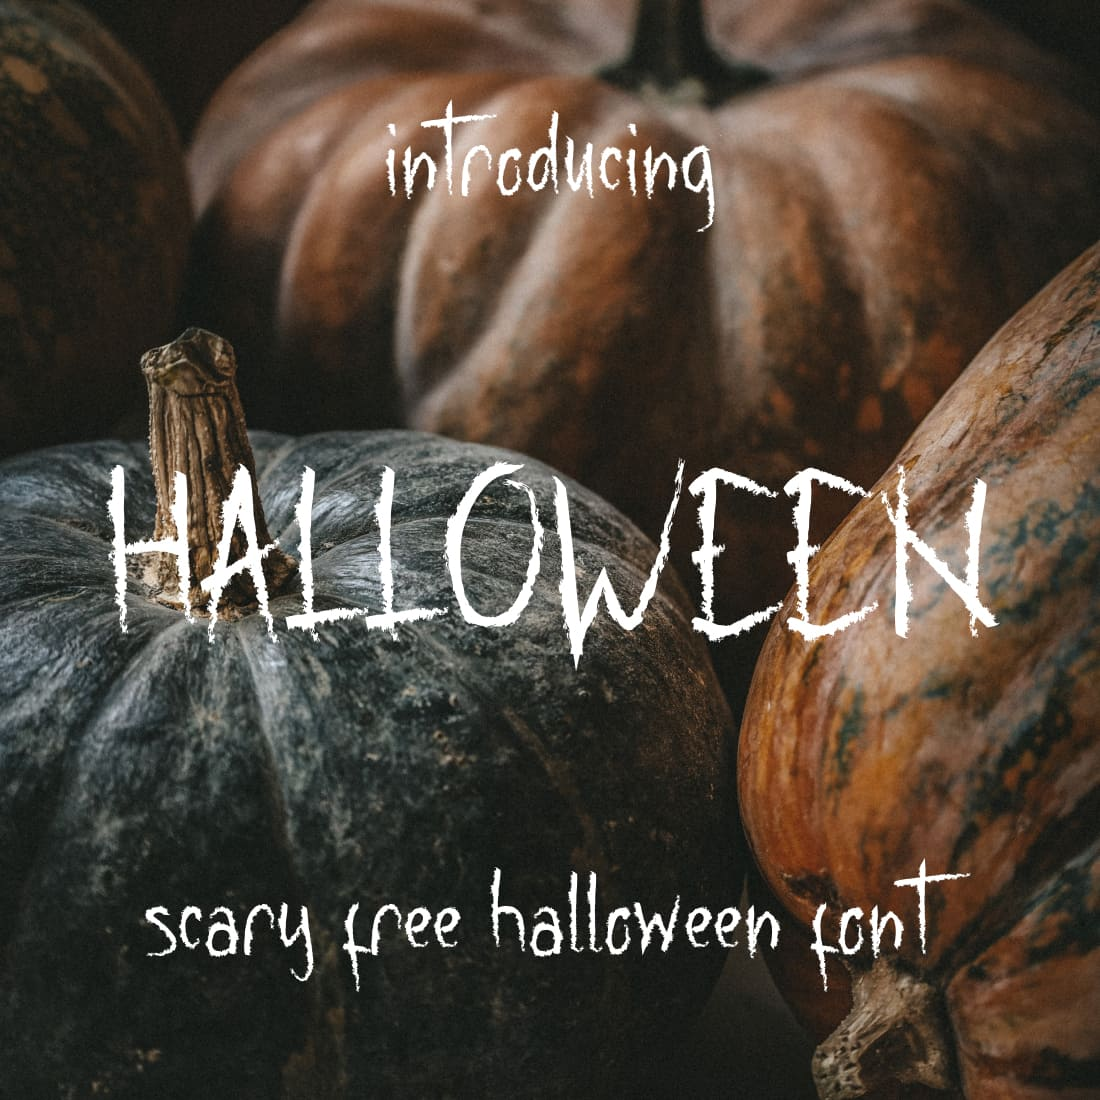 Main Preview image for Scarry free halloween font.